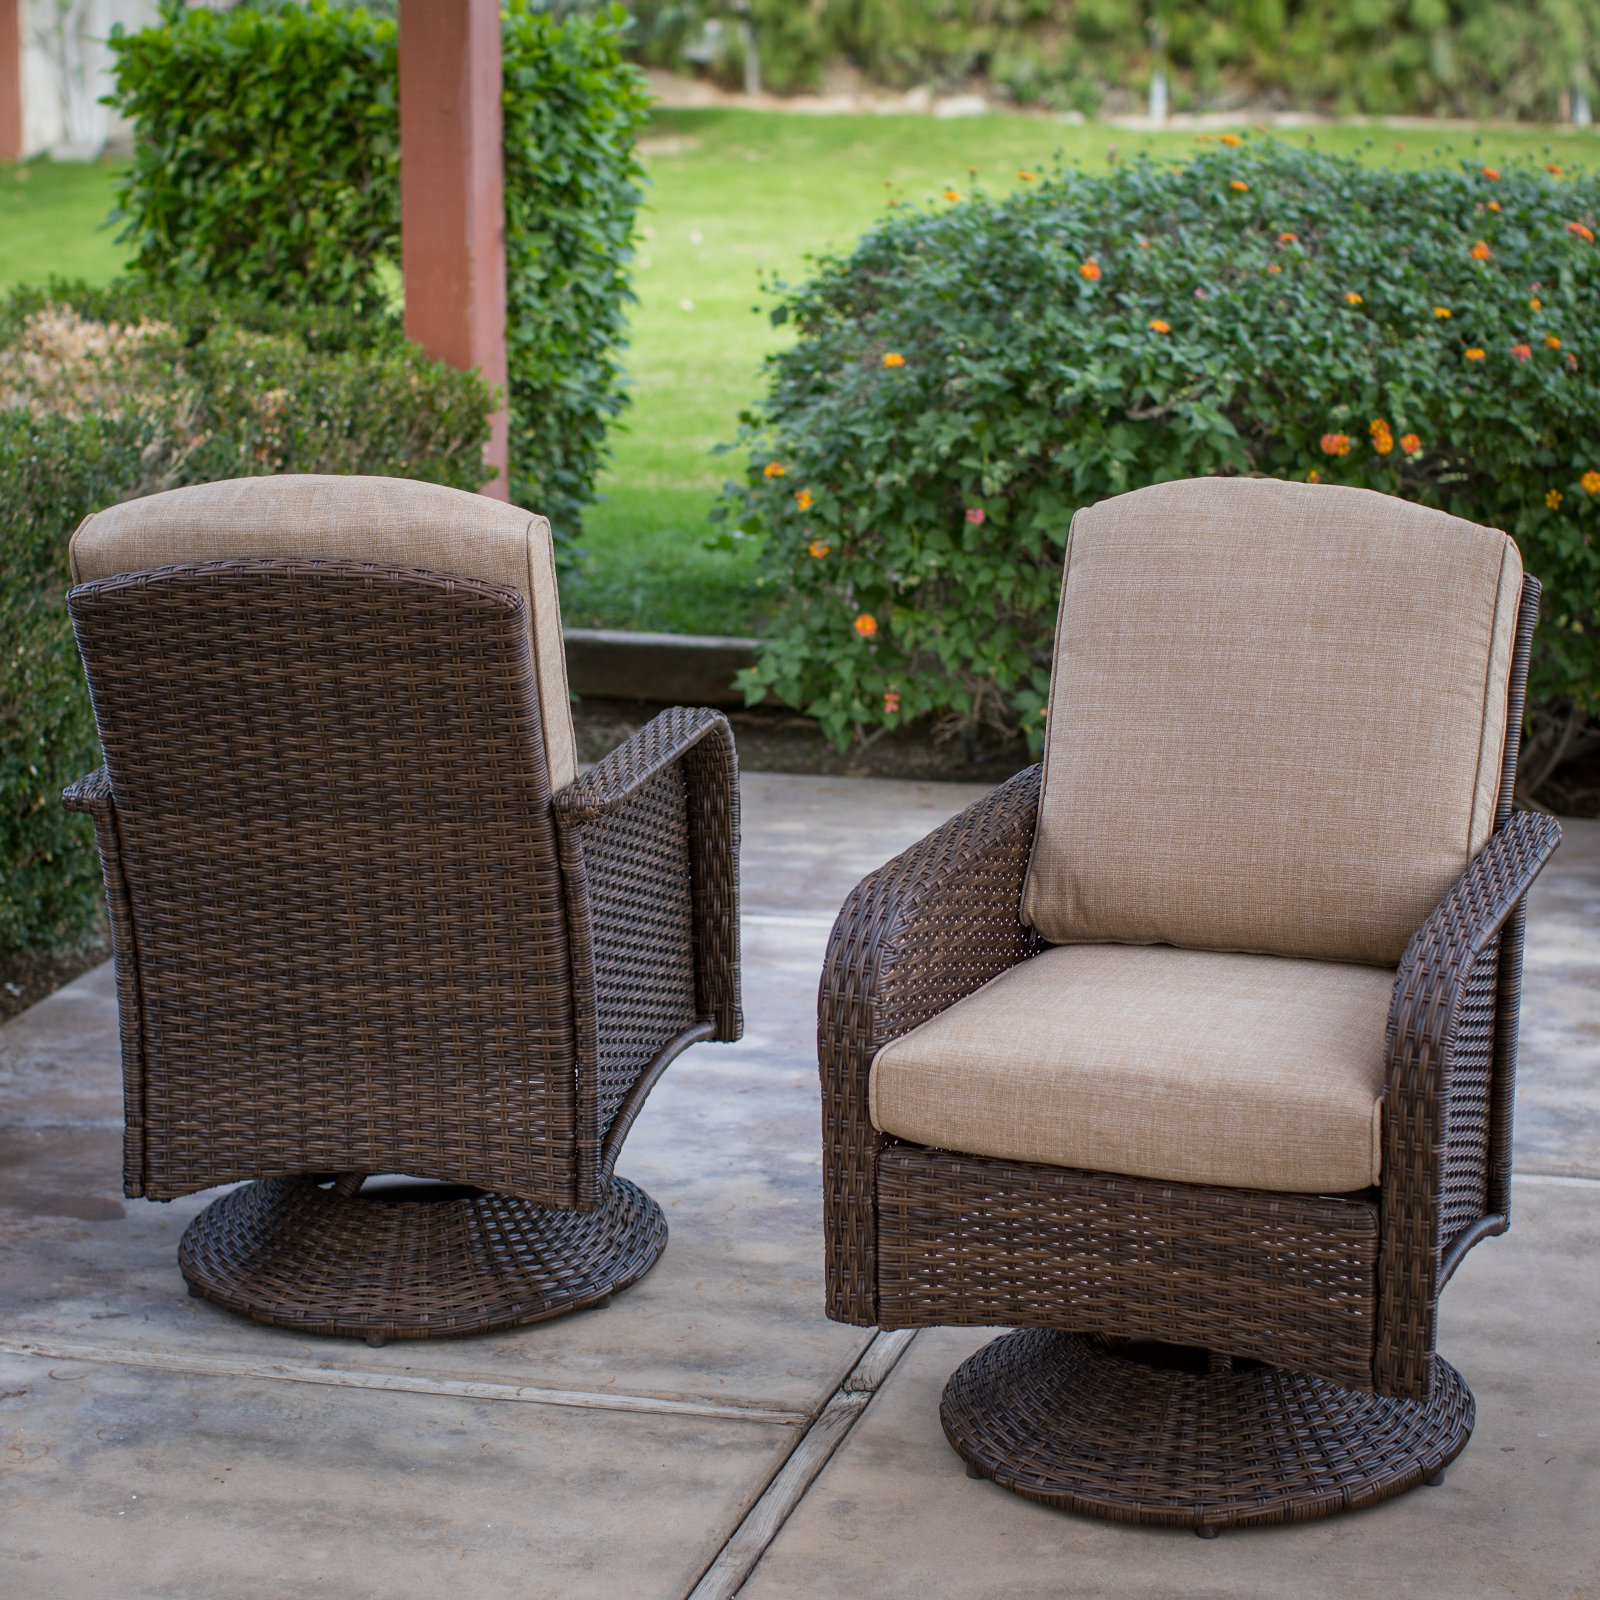 Coral Coast Tiara Garden All Weather Wicker Patio Swivel Dining Chairs    Set Of 2